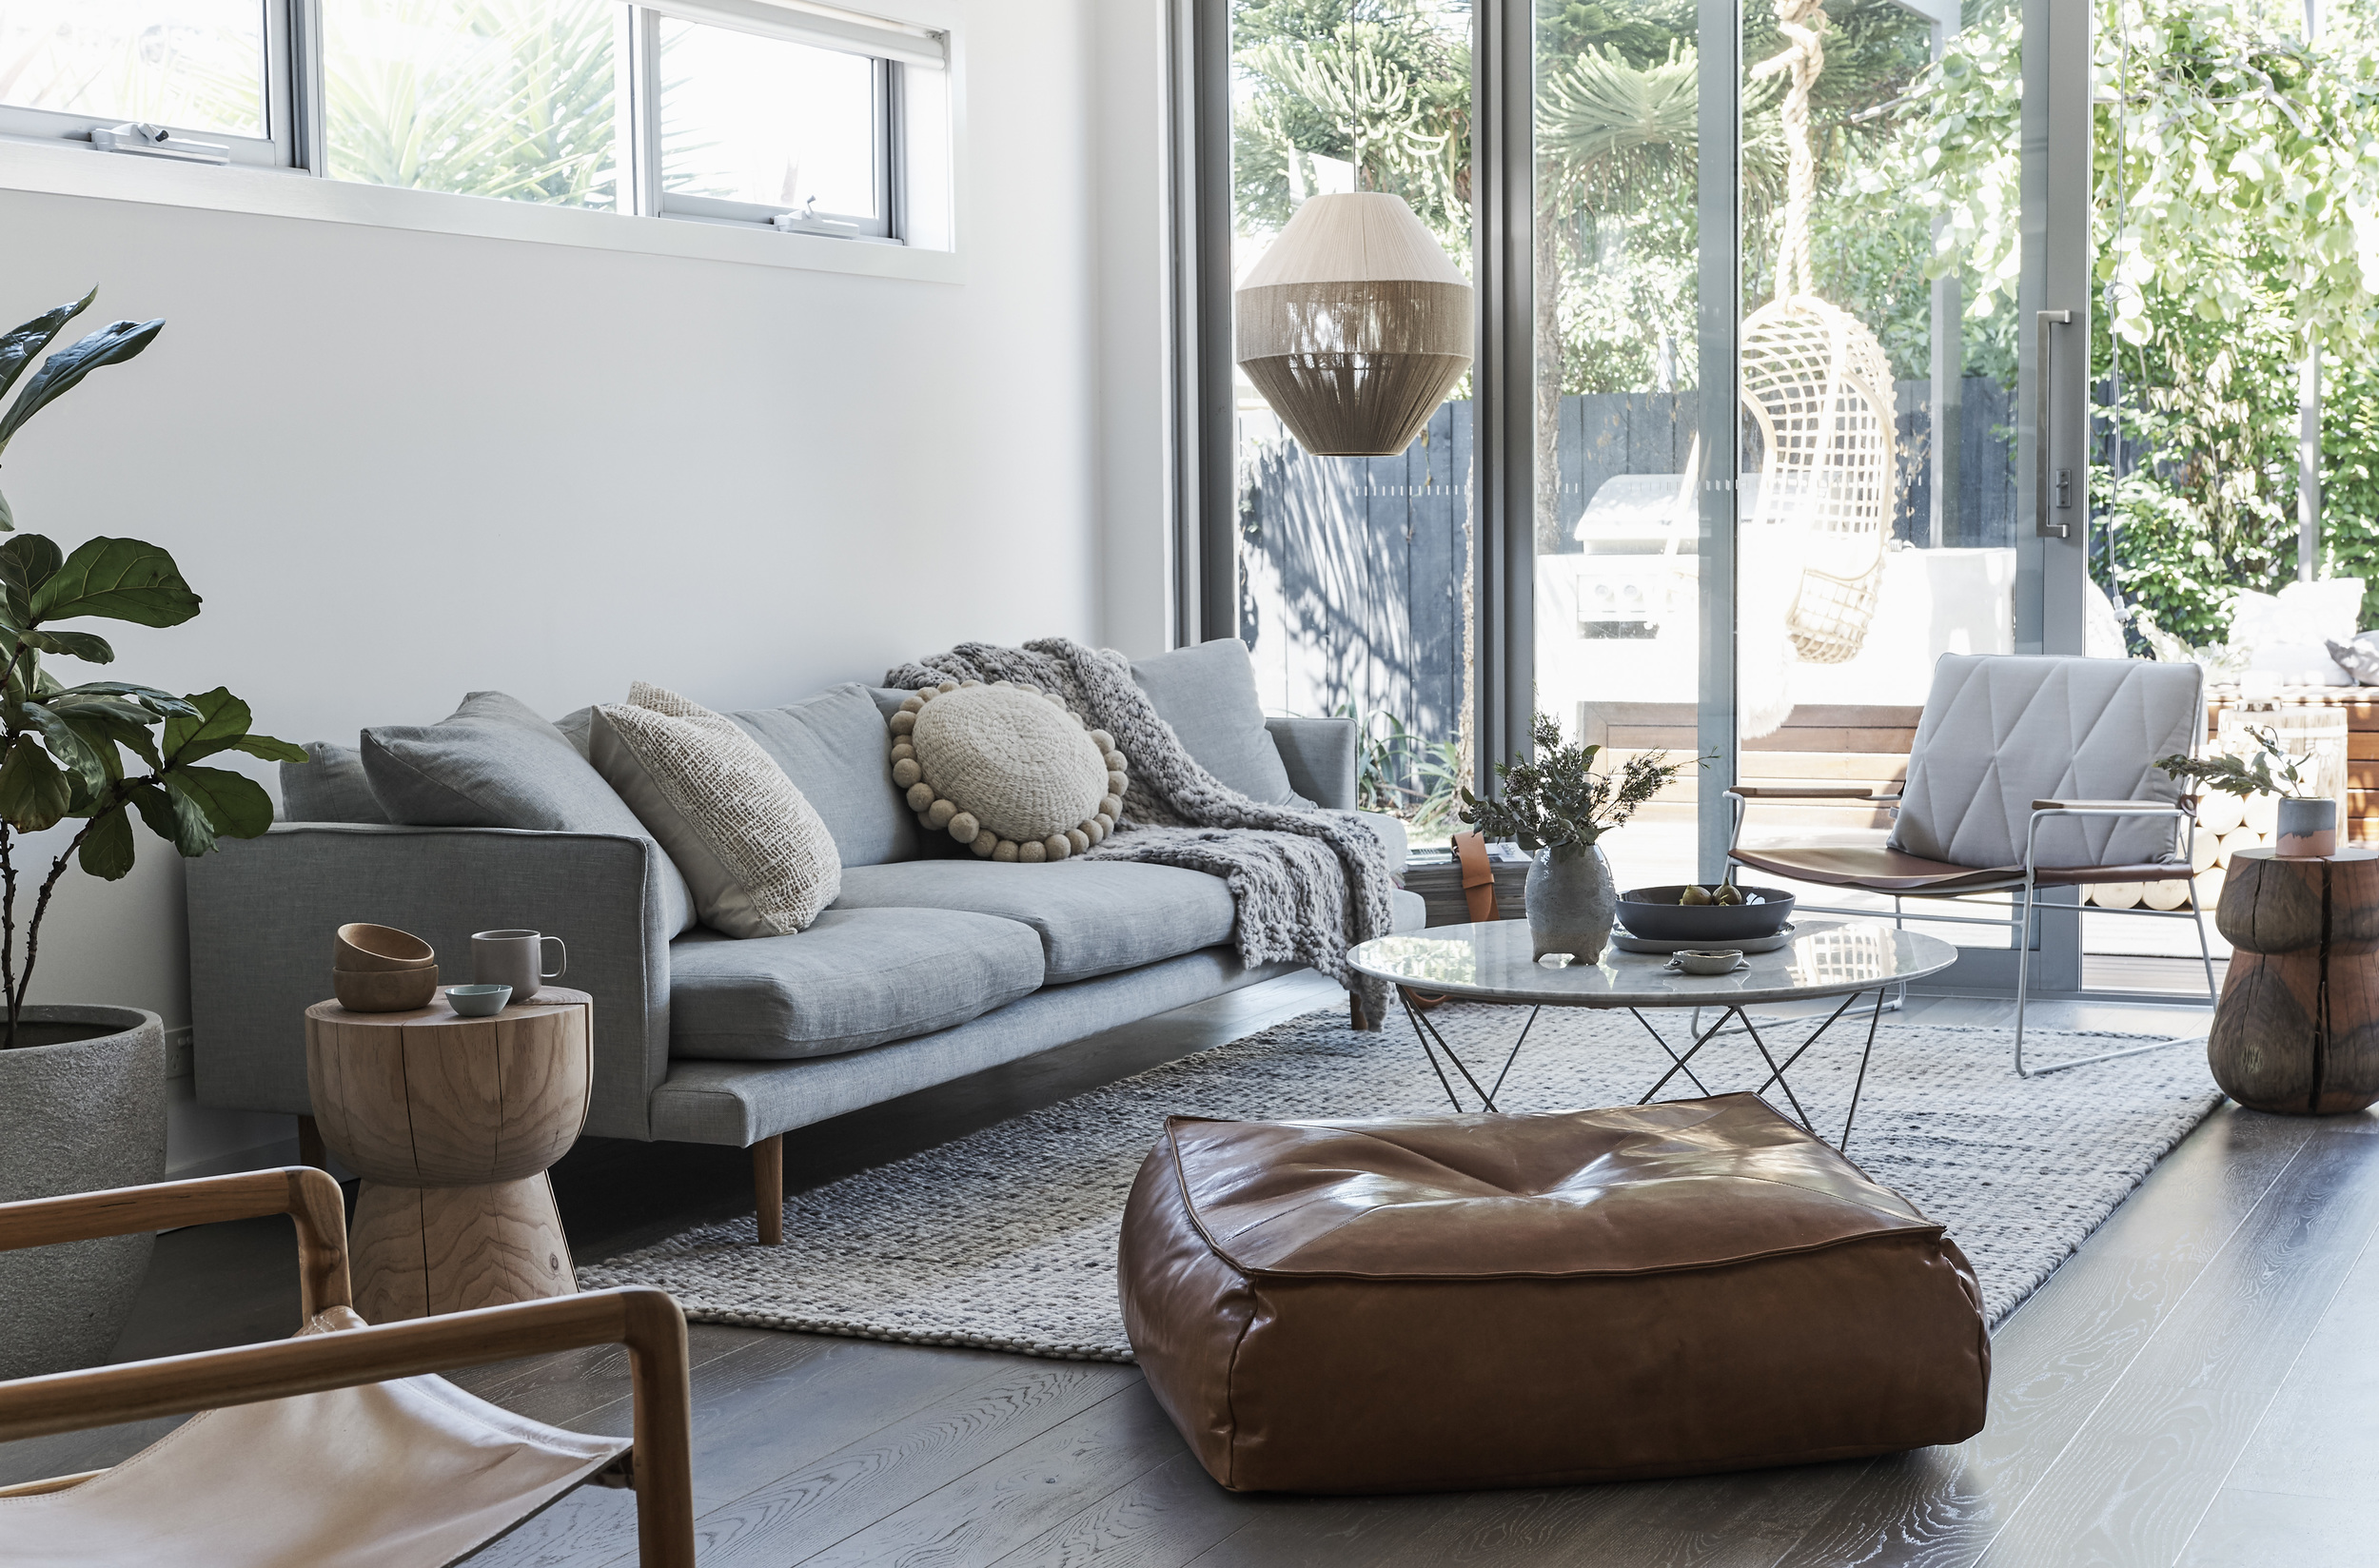 Natural timber is the hero in this warm, texural living space. Freddy Sofa  Huset , Seb chair, Stanley stool and Alby ottoman  Jardan , Egg cup stool  Mark Tuckey , Como marble coffee table  Globe West , Floor rug  Halcyon Lake , Smith leather sling chair  Barnaby Lane  and ceramics by  Bridget Bodneham  and  Marmouset Found . Dream weaver pendant light  Pop and Scott , cushions  We Are Pampa  along with flame throw also by  Tribe and Co .